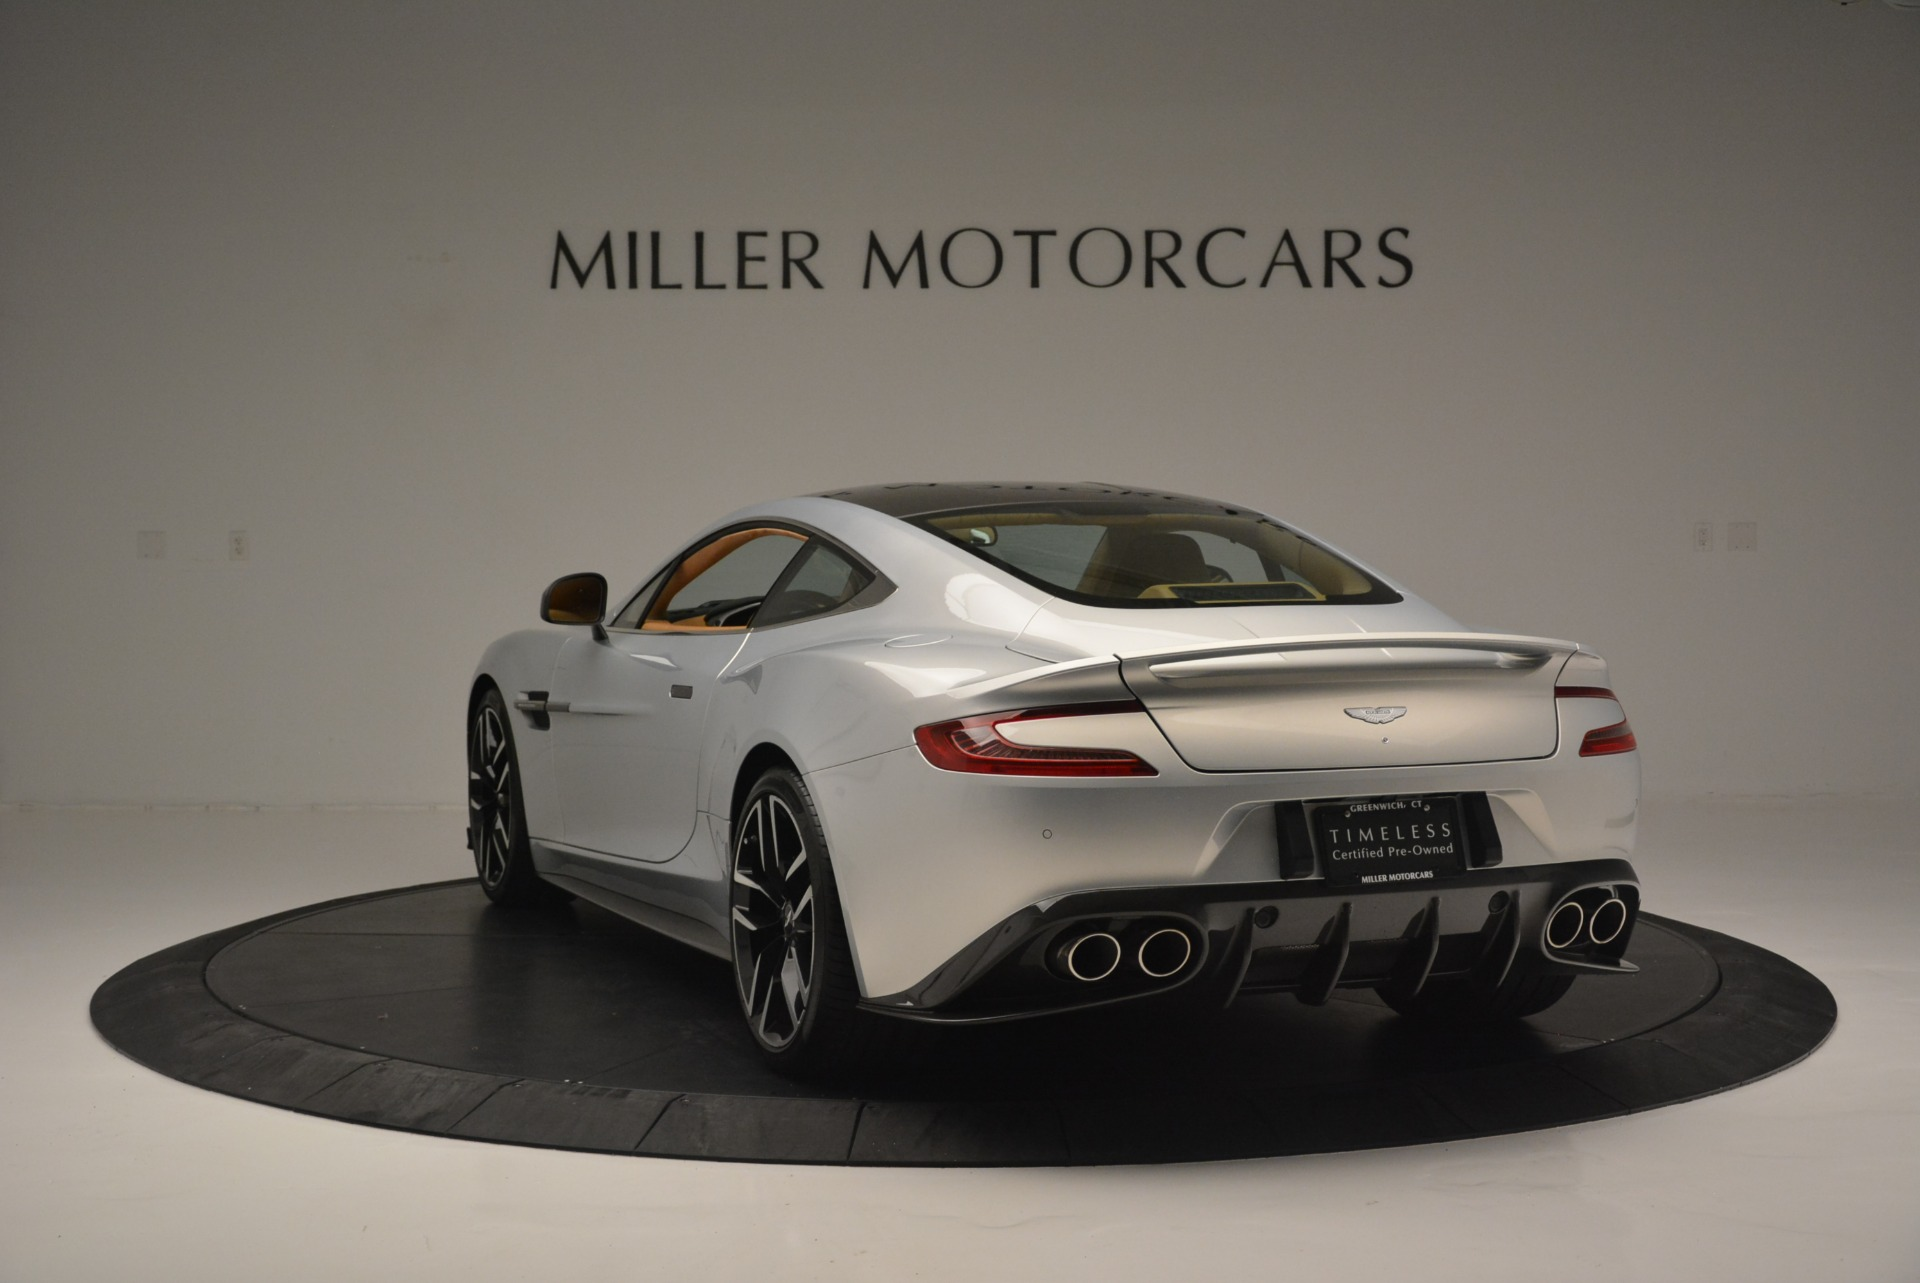 Used 2018 Aston Martin Vanquish S Coupe For Sale In Westport, CT 2421_p5